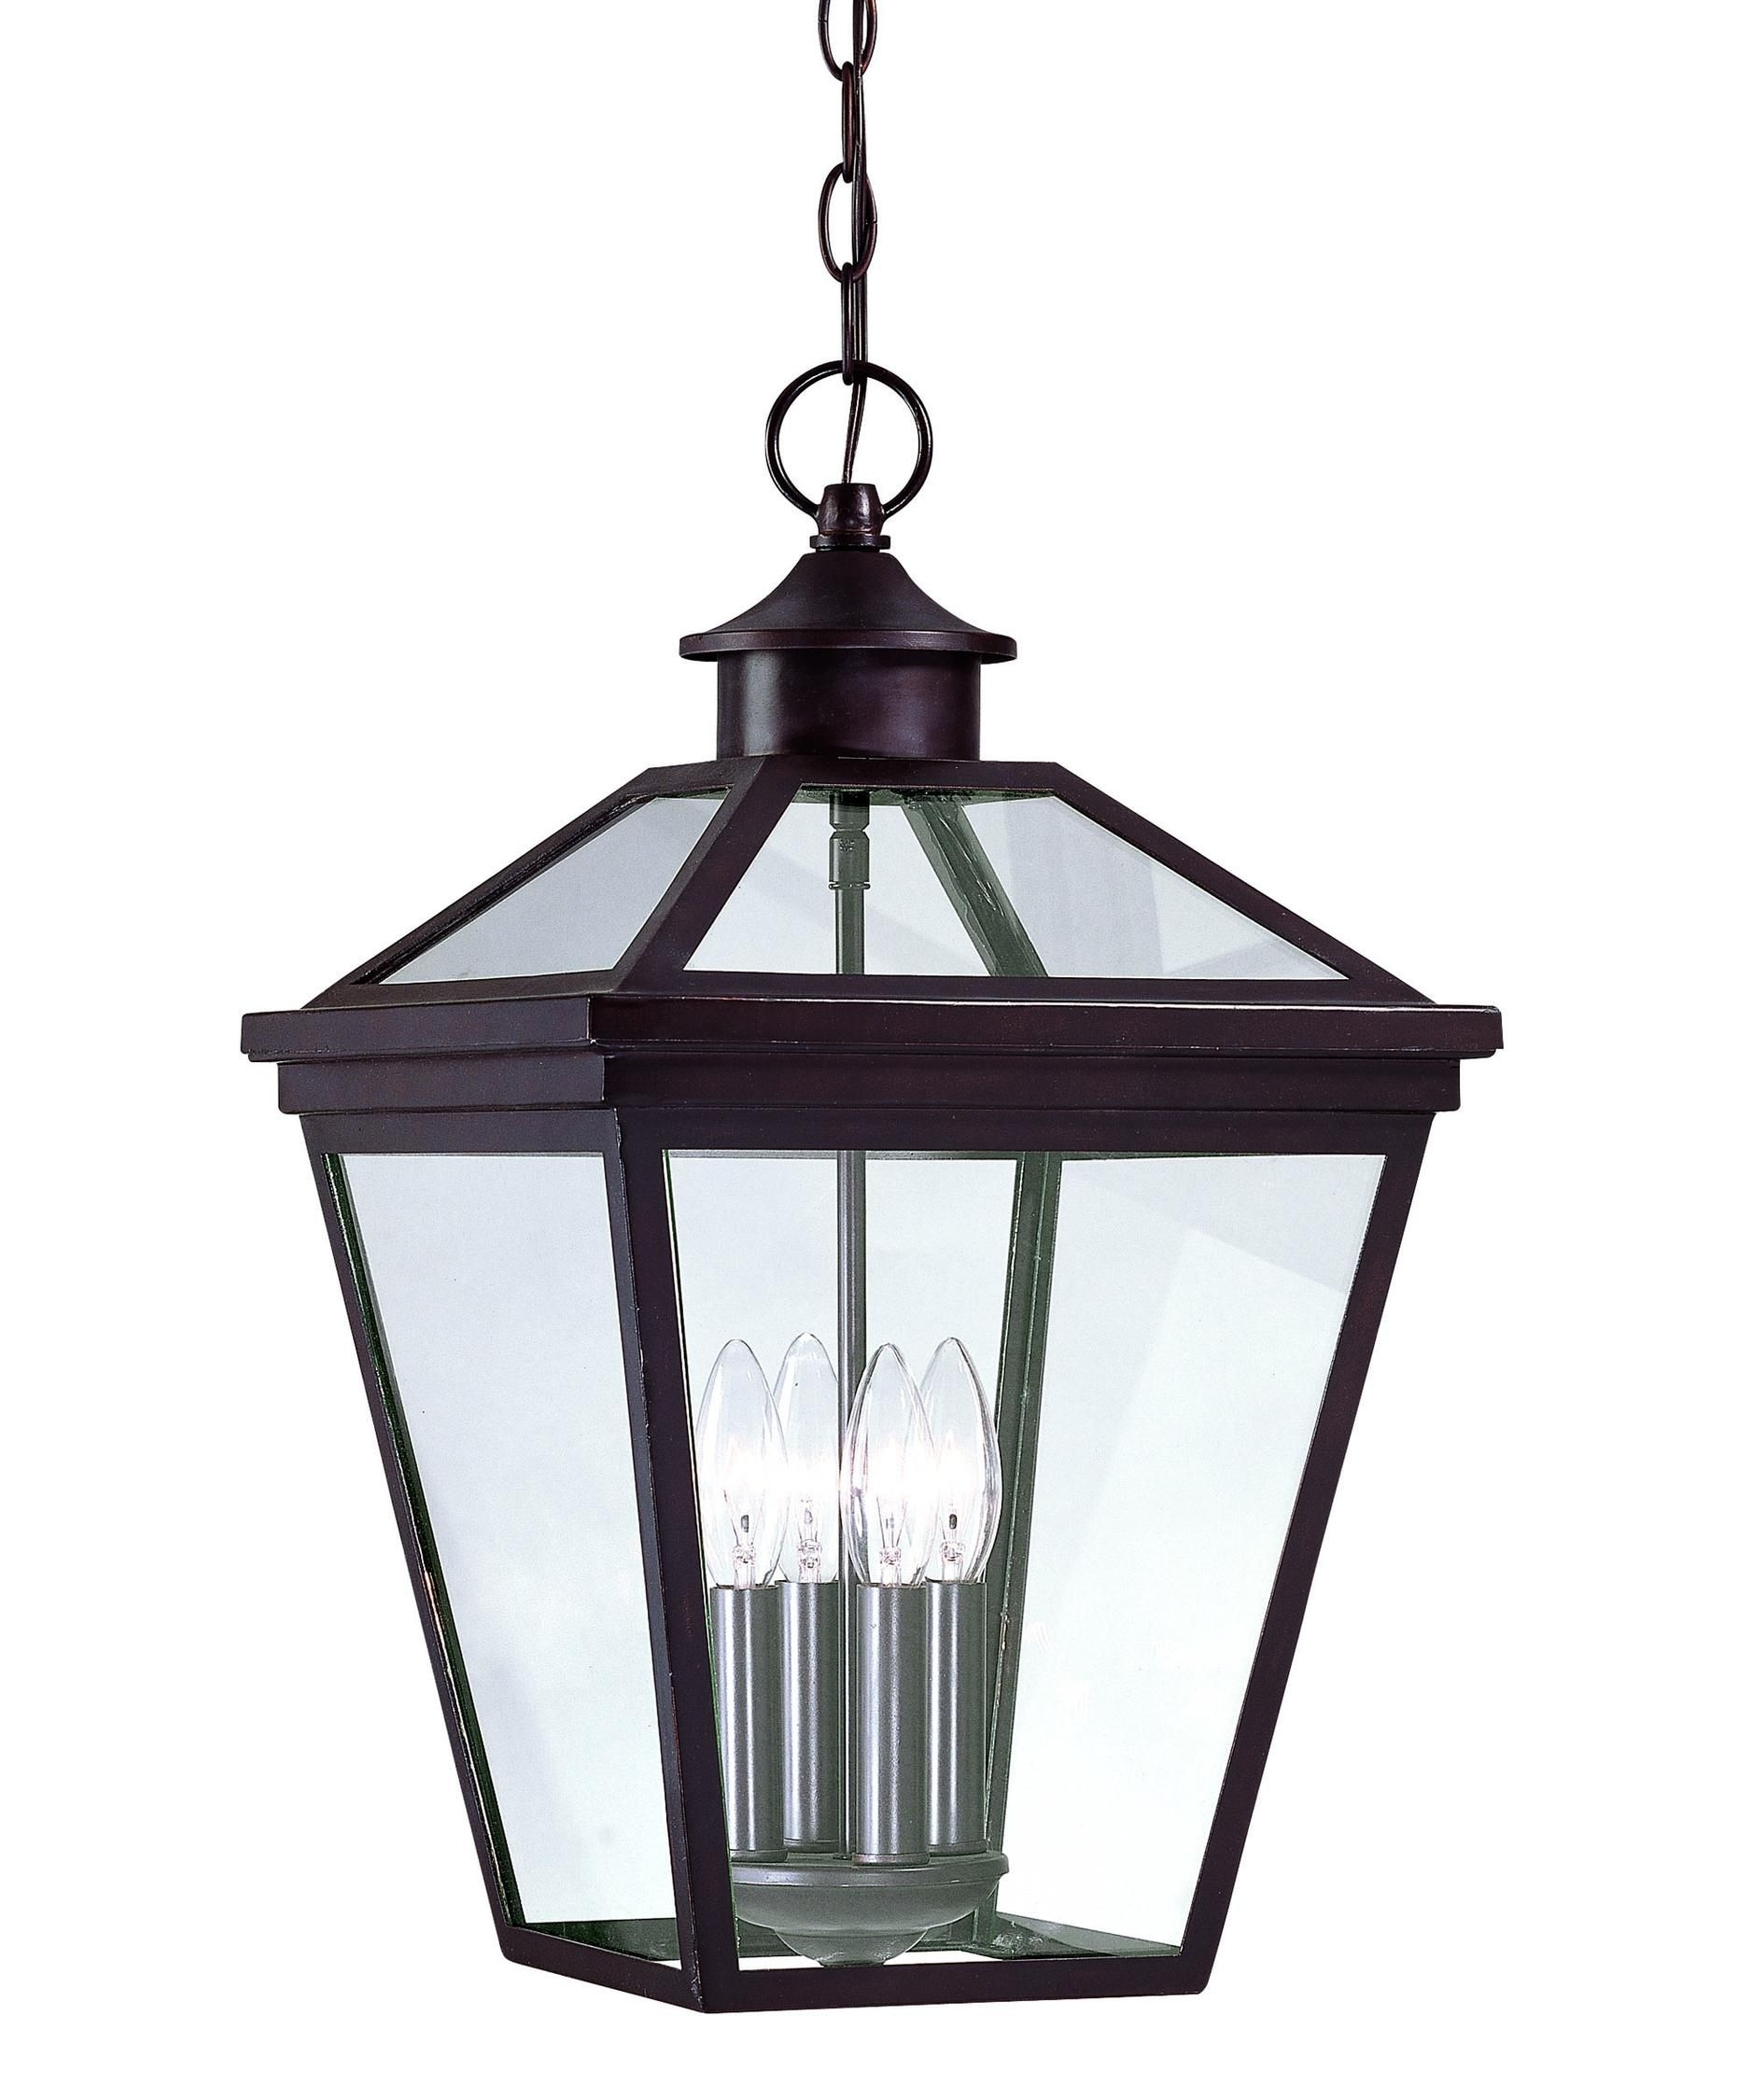 Savoy House Ellijay 4 Light Outdoor Hanging Lantern | Capitol Regarding Indoor Outdoor Hanging Lights (#8 of 15)